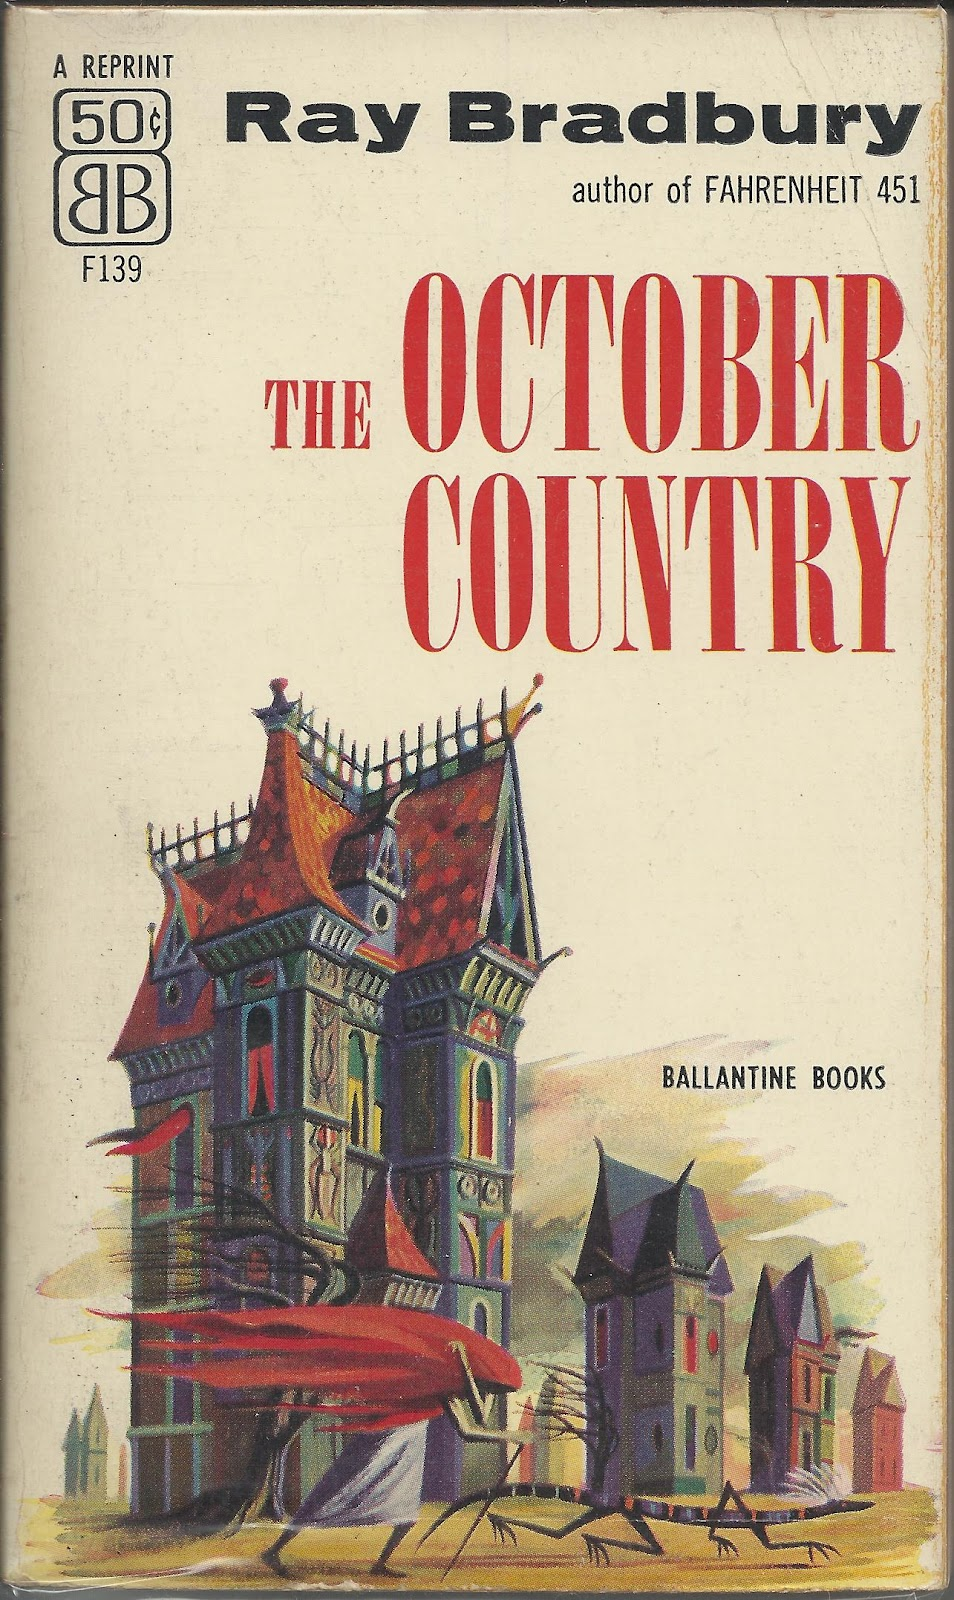 Joseph Mugnaini - The October Country by Ray Bradbury, (cover version two) 1955